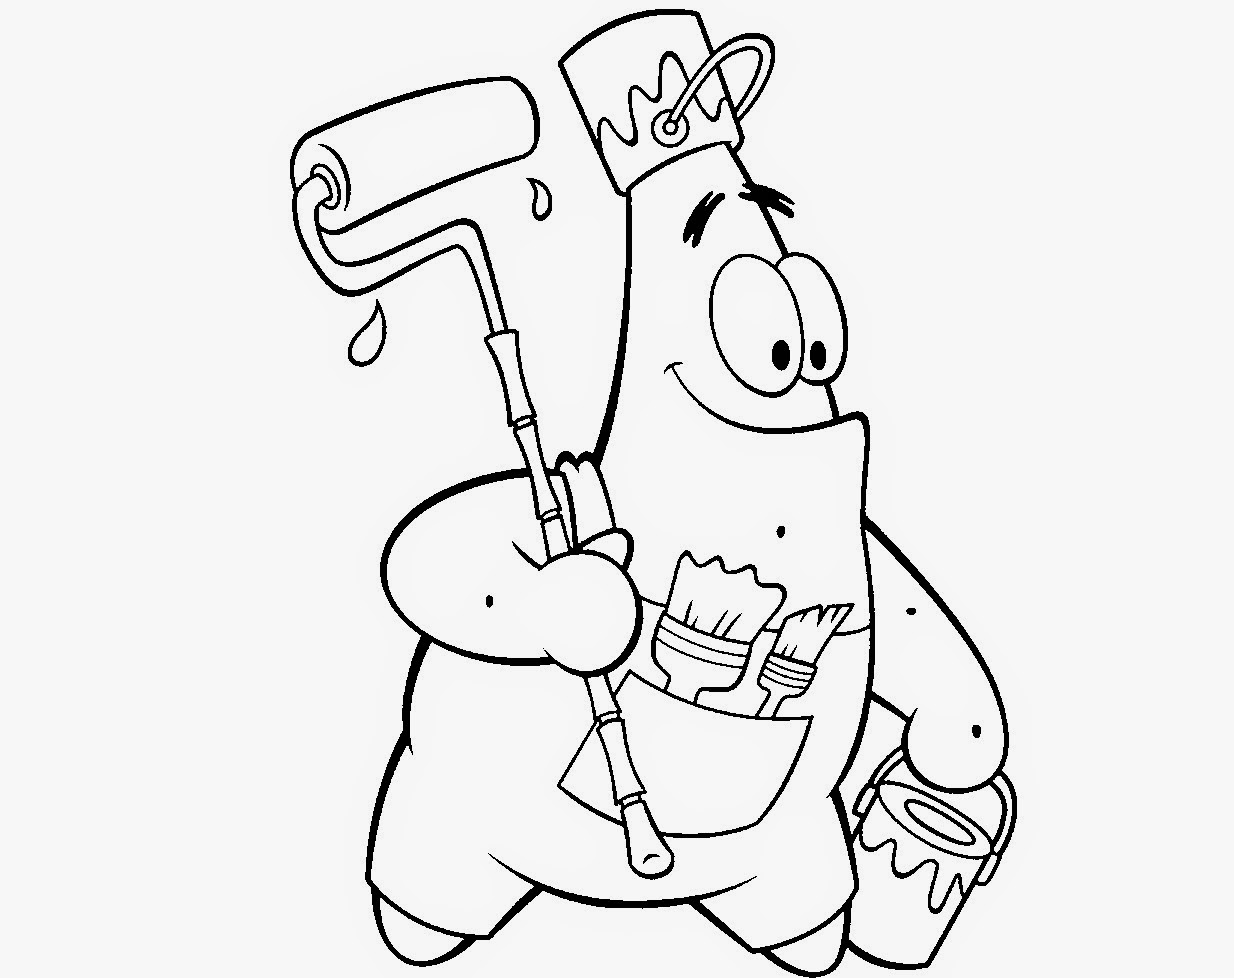 Bob Esponja Coloring Drawing Free wallpaper